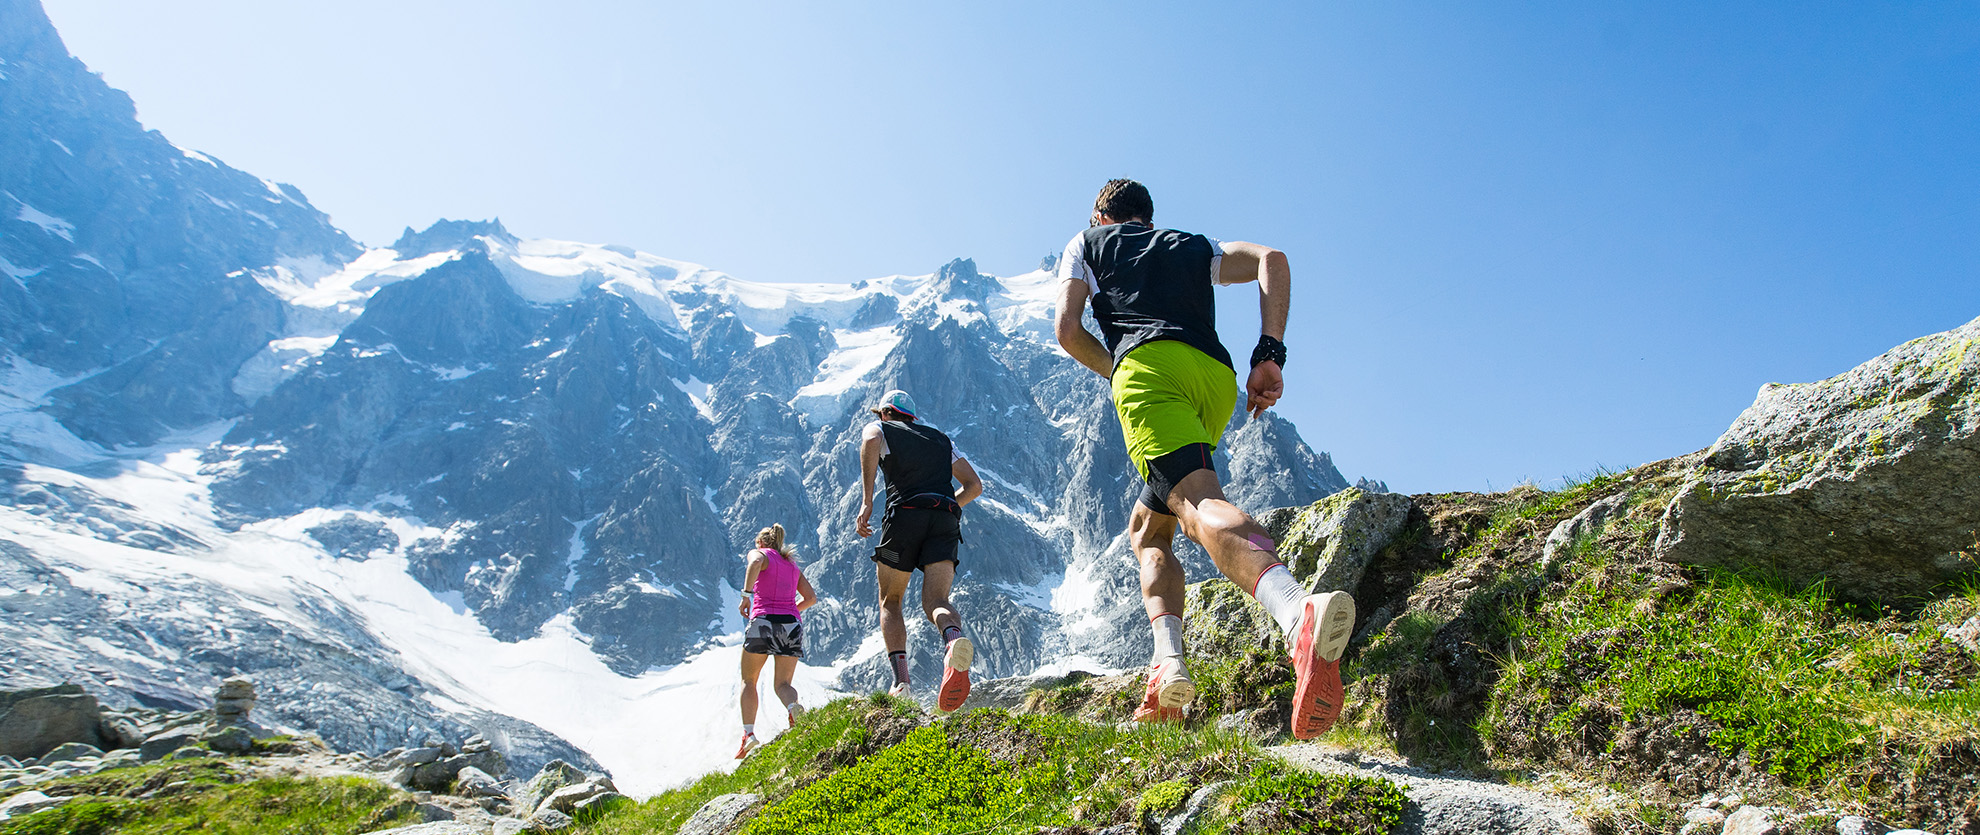 Trailrunners in the Alps - Resonant Digital Article on Outdoors Equipment Websites